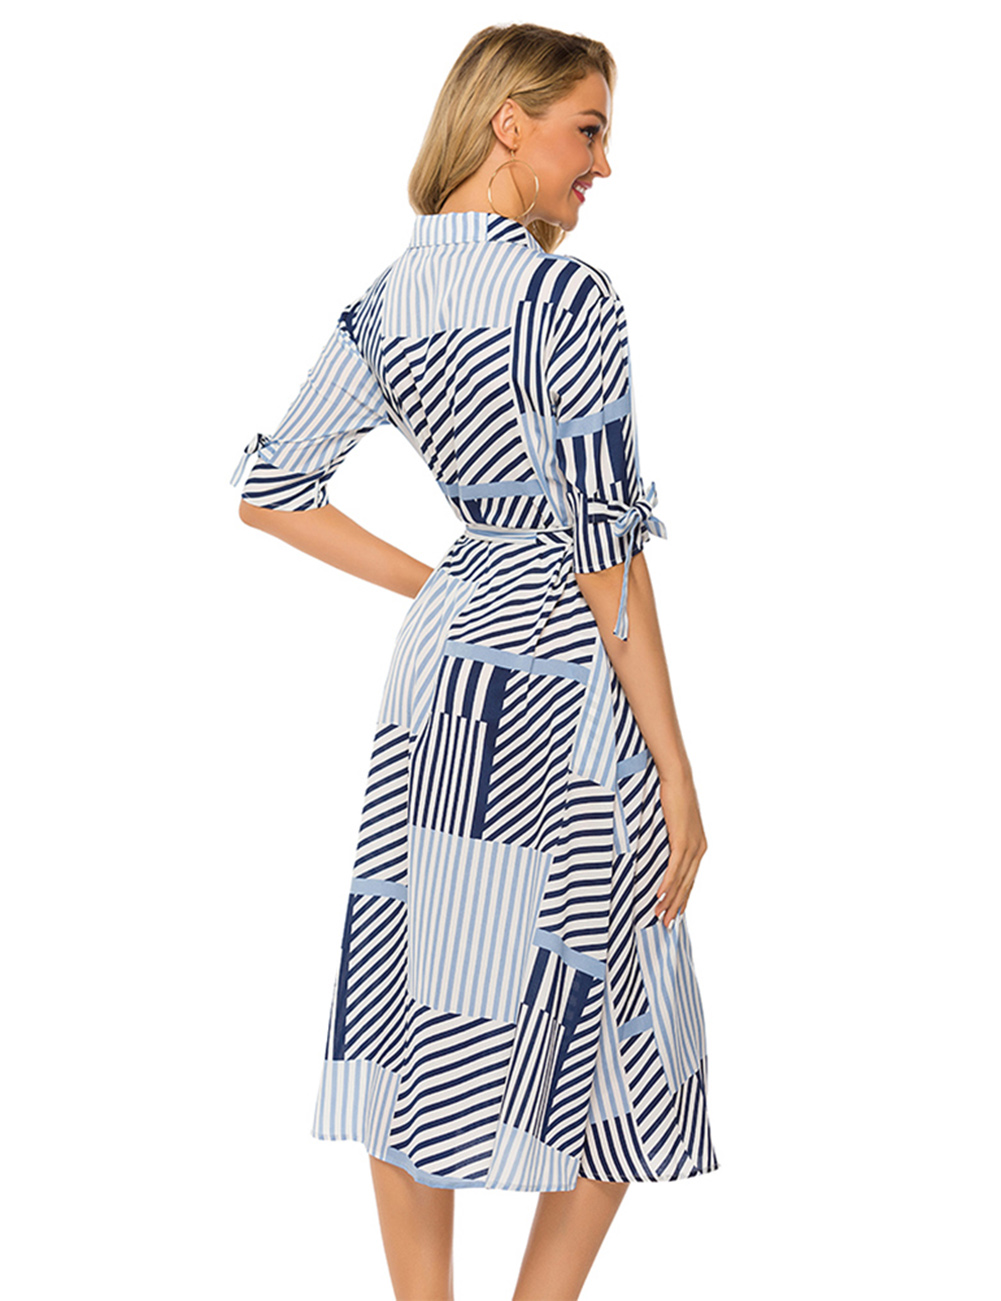 //cdn.affectcloud.com/feelingirldress/upload/imgs/2019-06-27/VZ190875-BU3/VZ190875-BU3-2.jpg